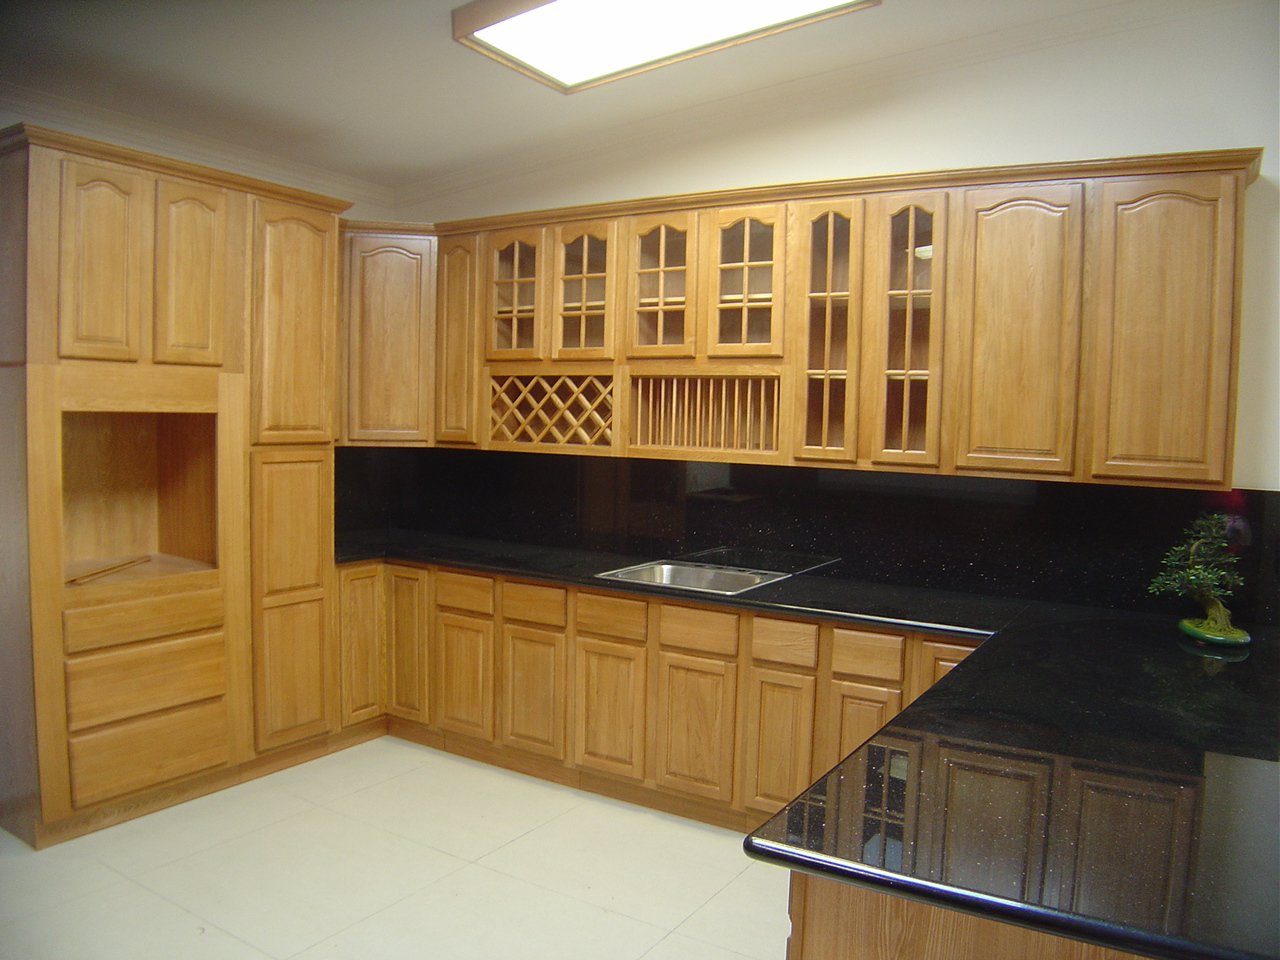 Remarkable Kitchen Design Ideas with Oak Cabinets 1280 x 960 · 557 kB · jpeg